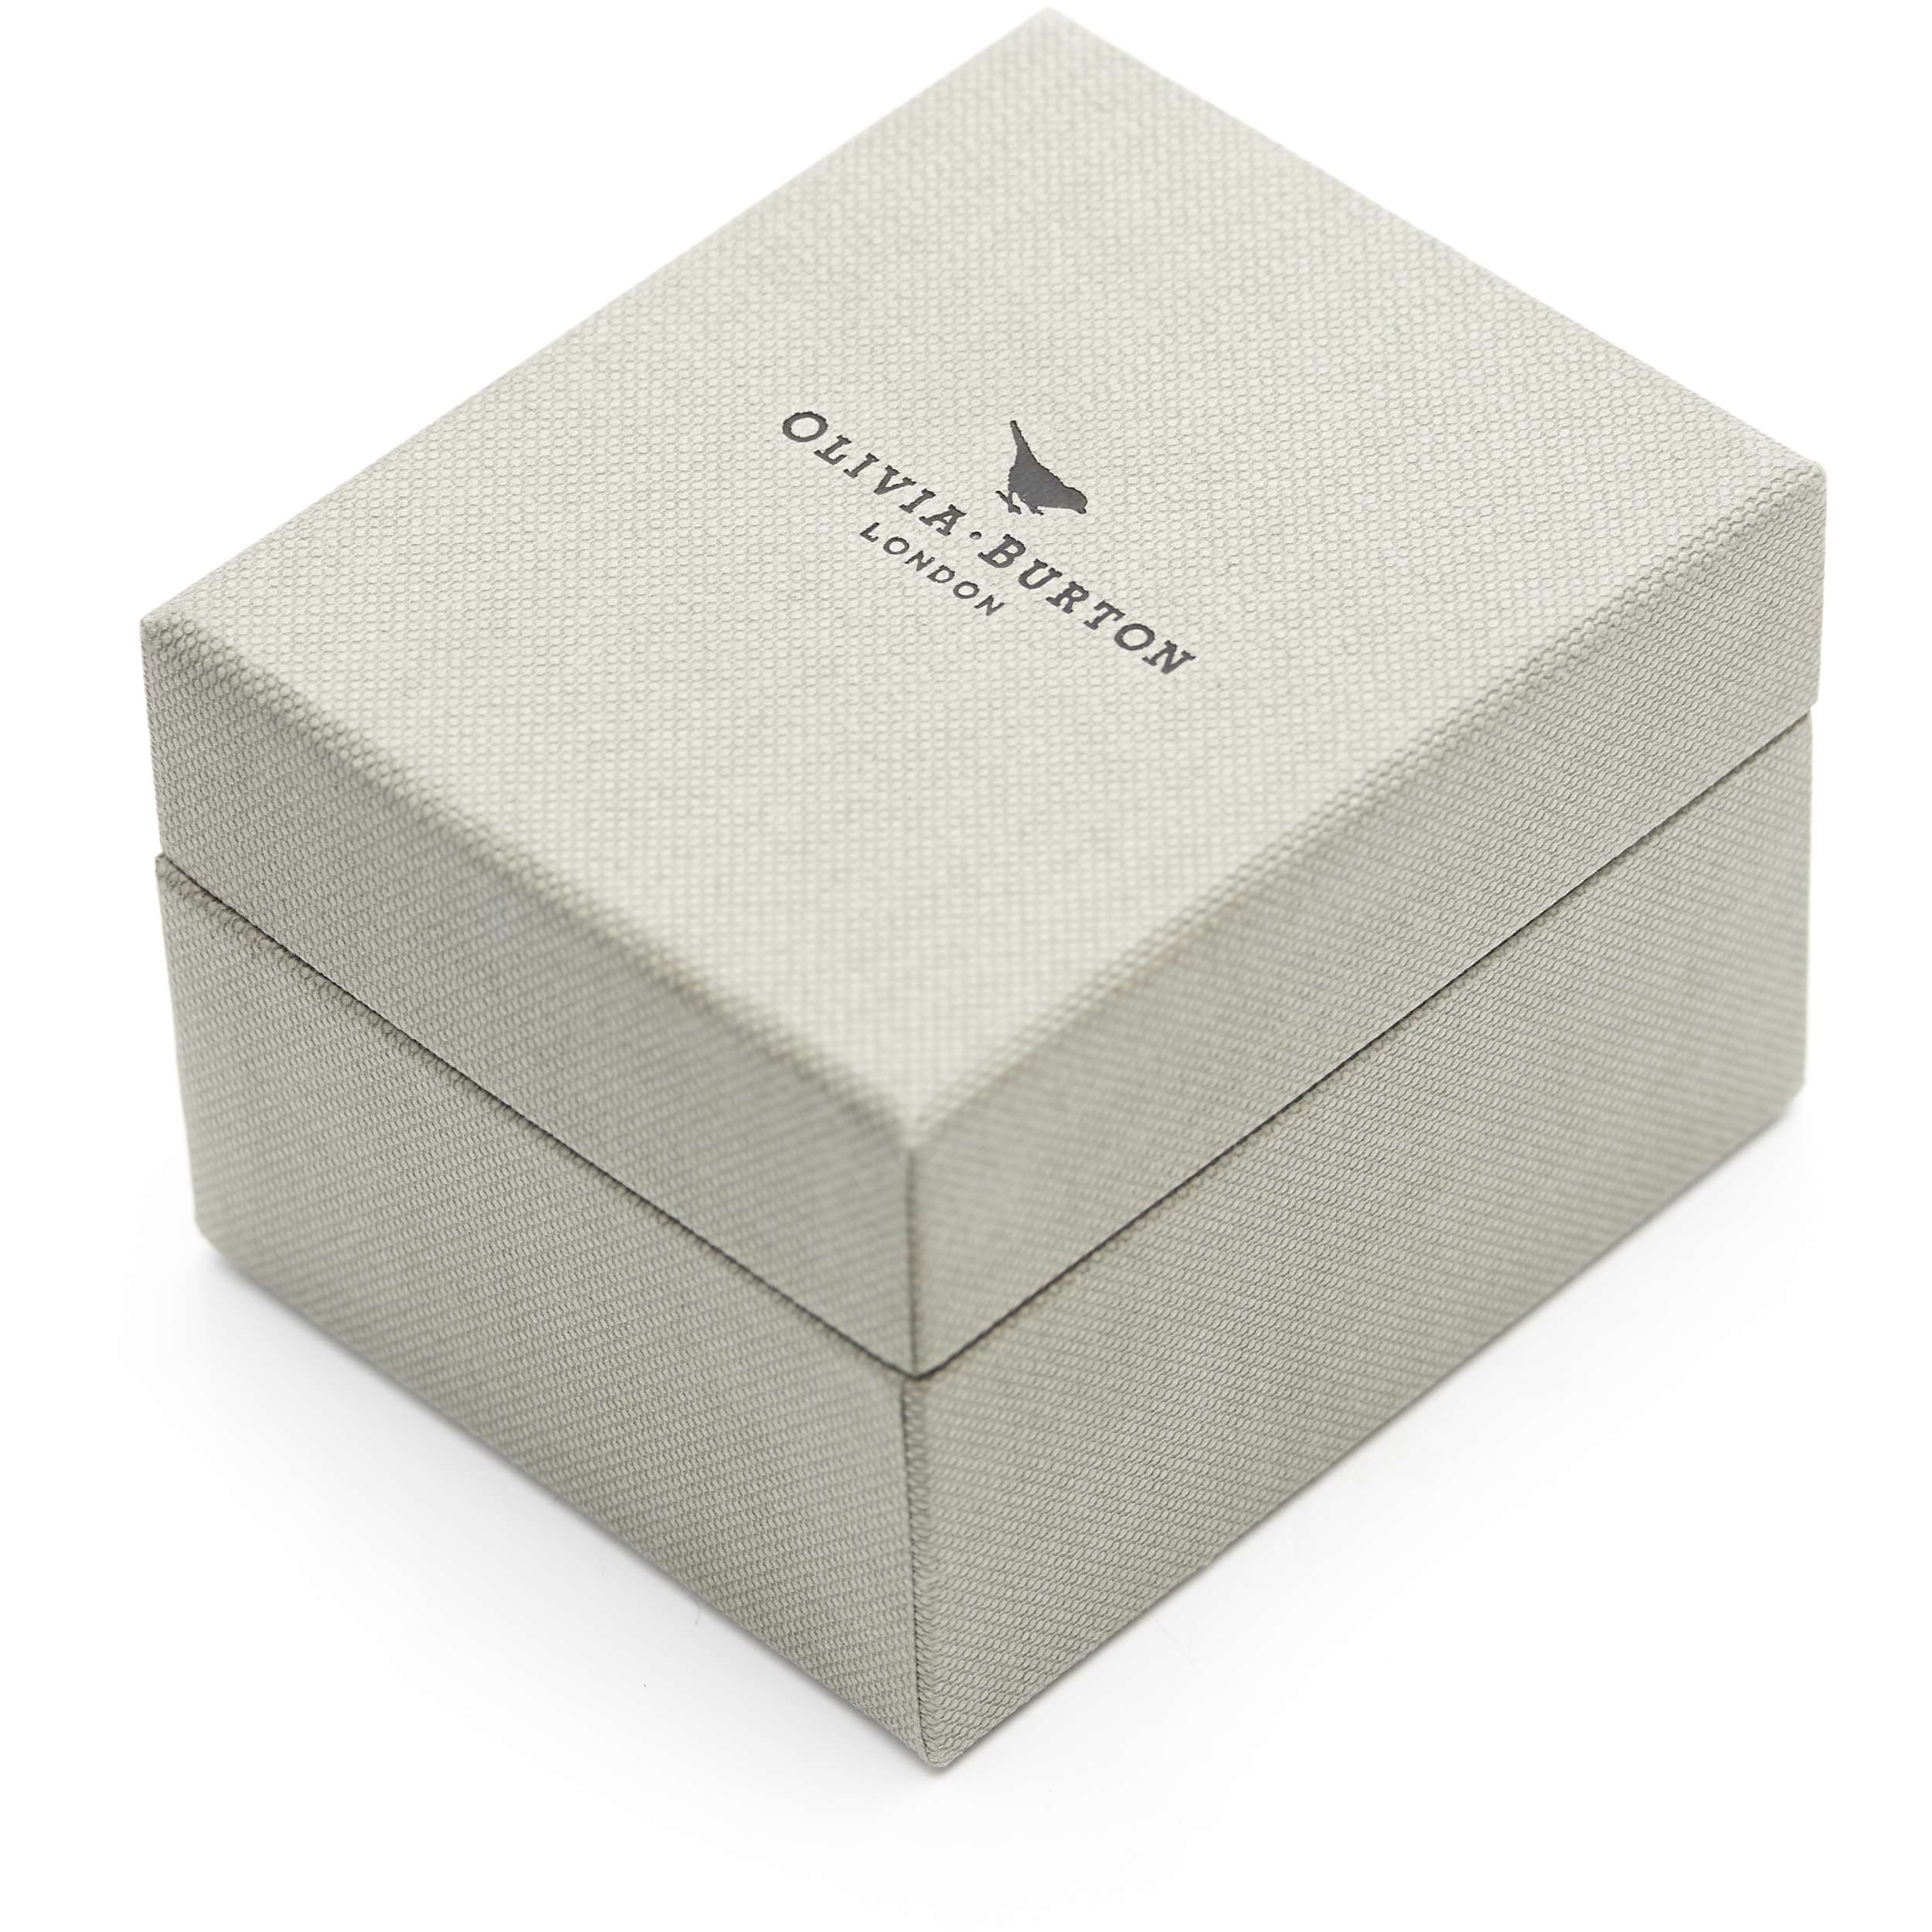 Official Olivia Burton presentation box